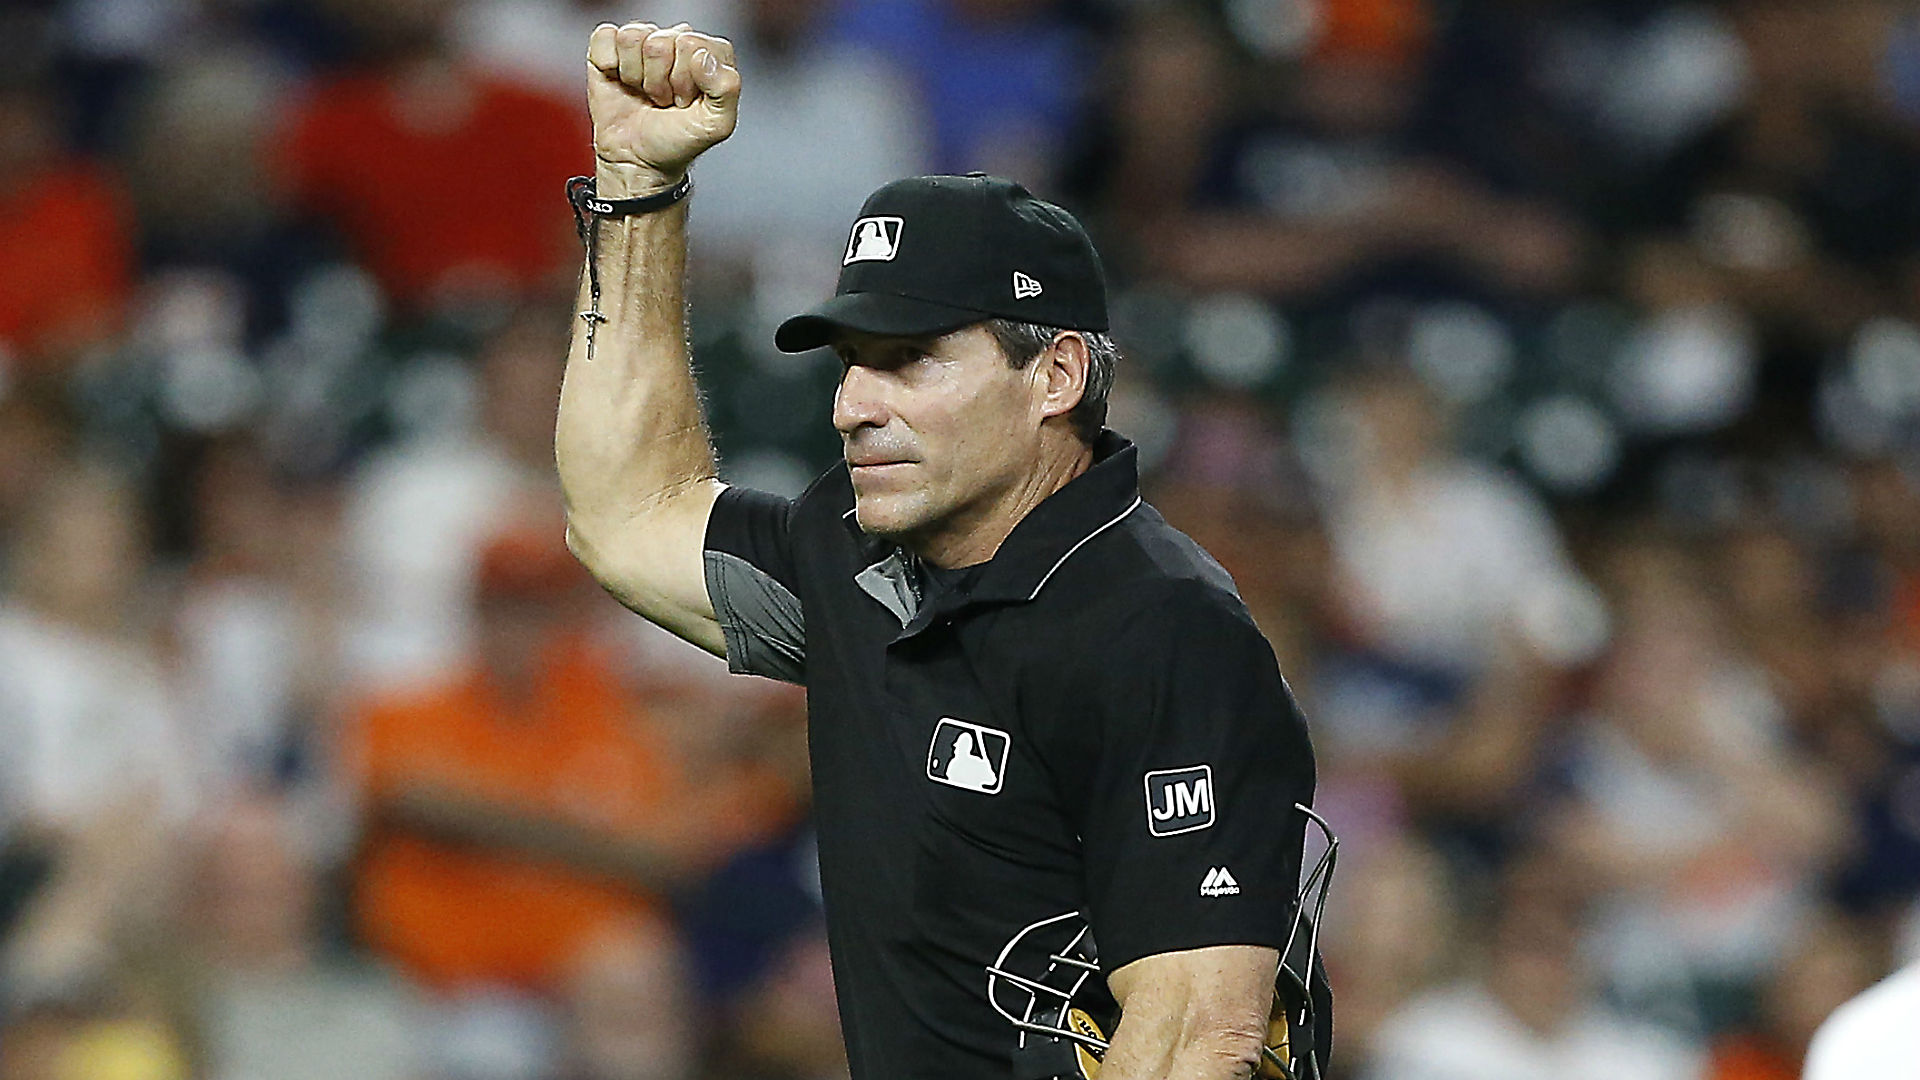 Yankees curse out Angel Hernandez after umpire blows key call